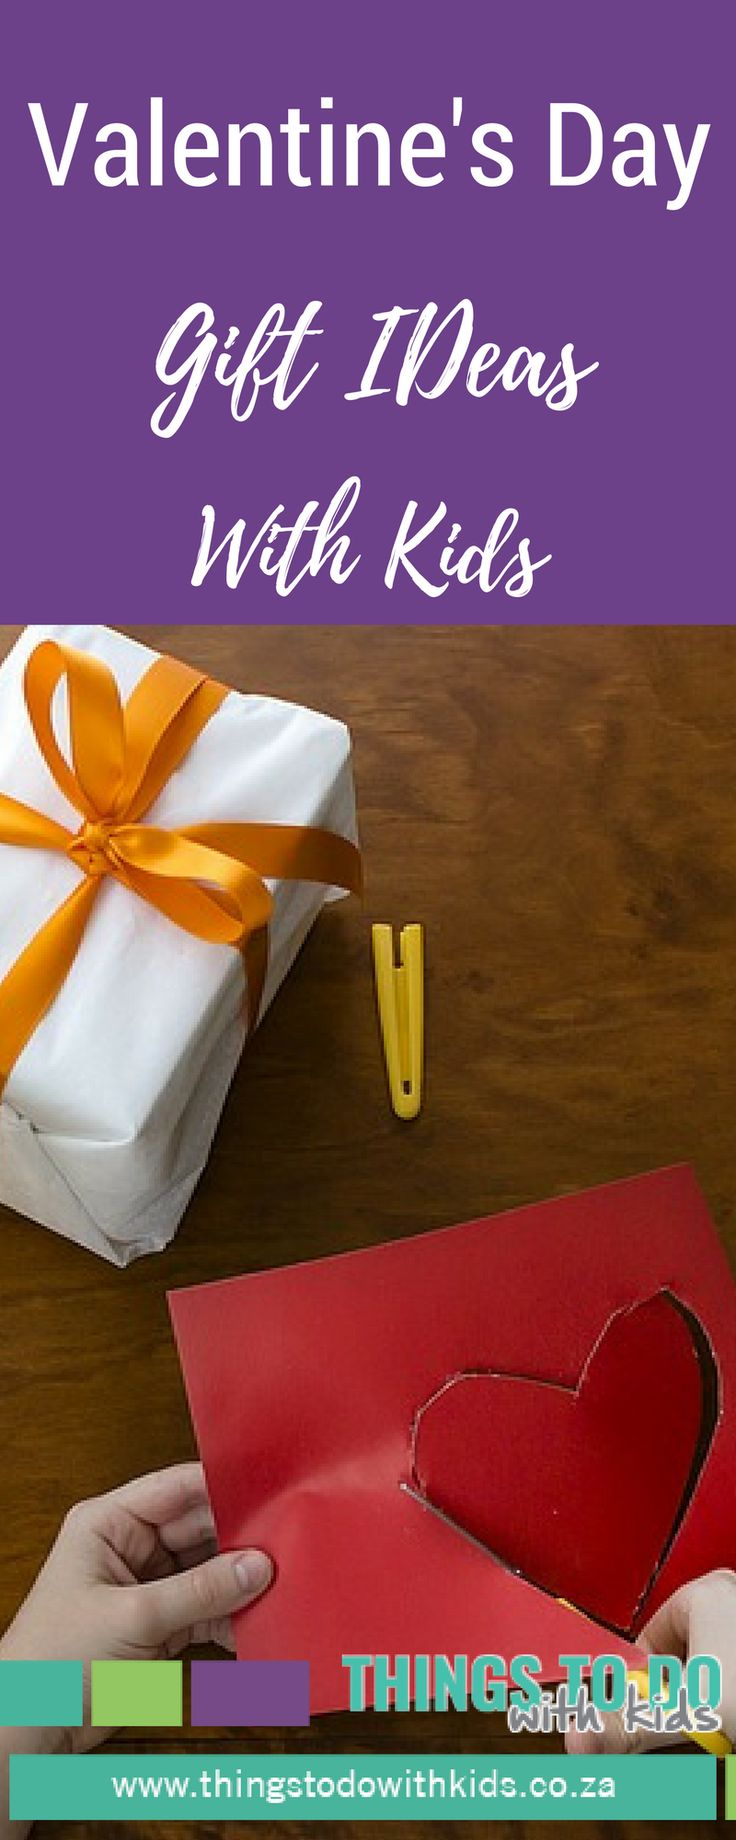 Arts & Crafts | Valentines Day Gift Ideas | Things to do with Kids